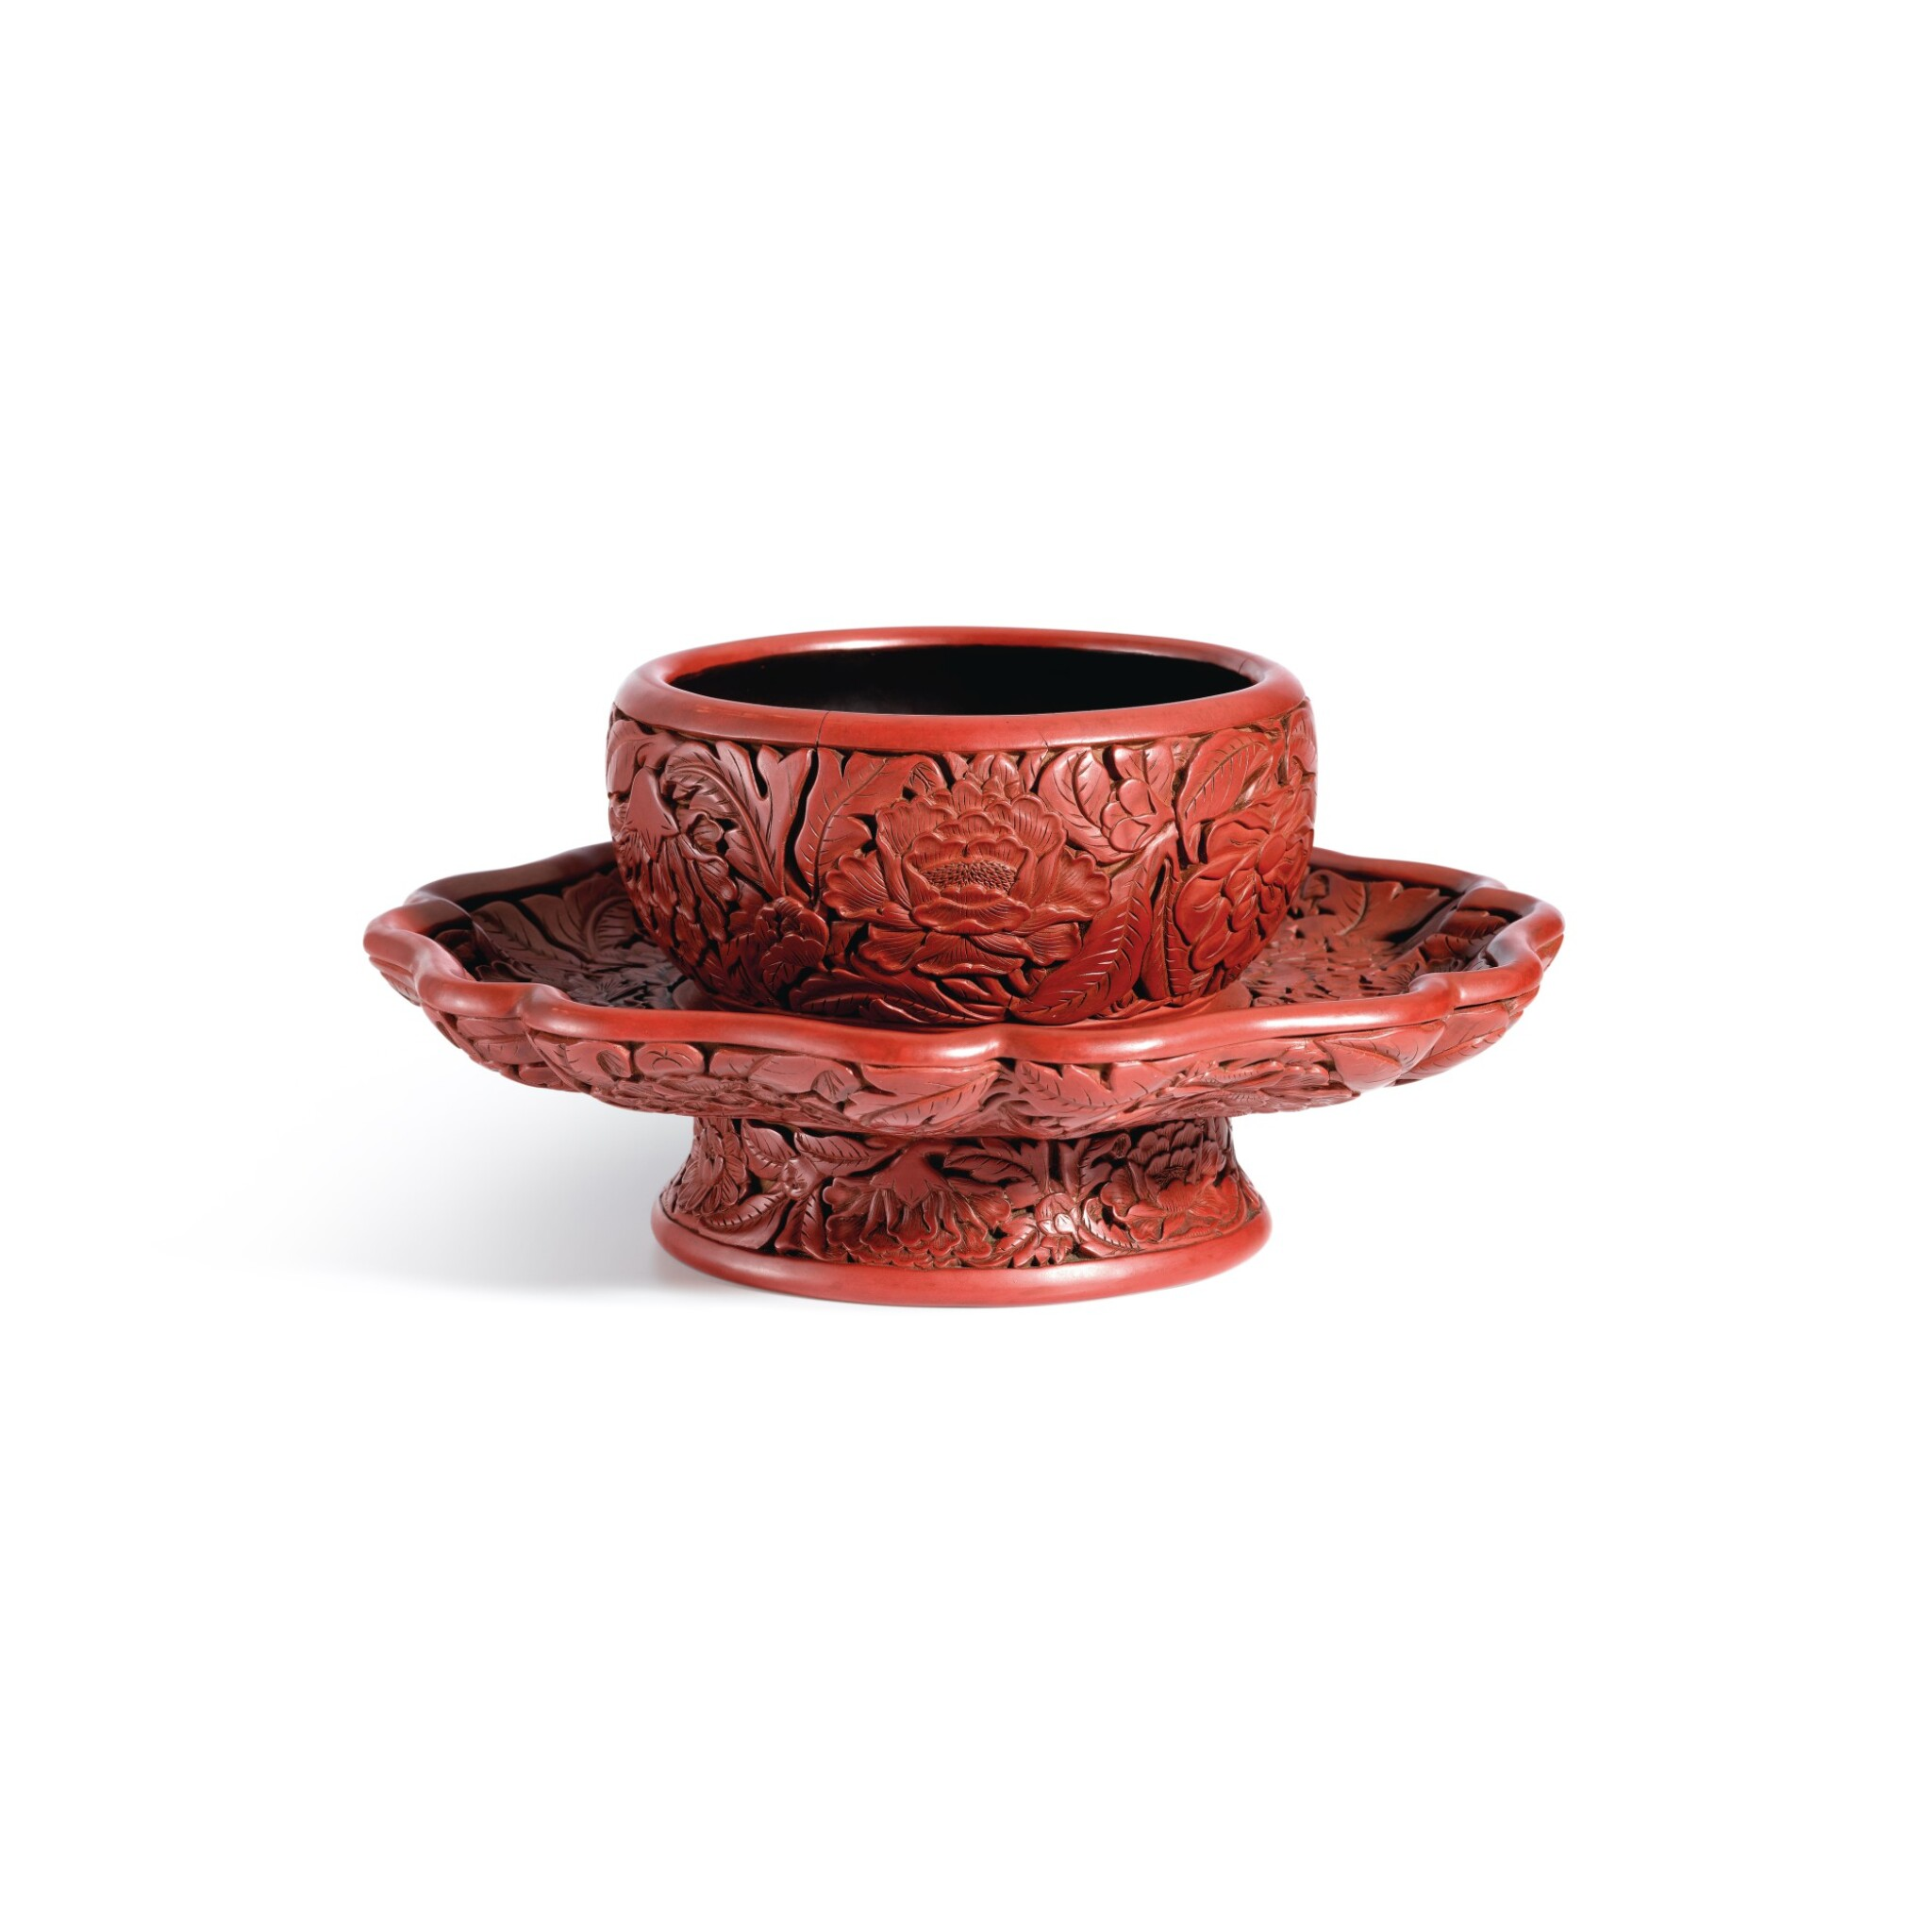 View full screen - View 1 of Lot 3662. An exceptional and important carved cinnabar lacquer bowl stand, Ming dynasty, Hongwu period, Yongle and Xuande marks   明洪武 剔紅花卉紋盞托 《大明永樂年製》、《大明宣德年製》款.